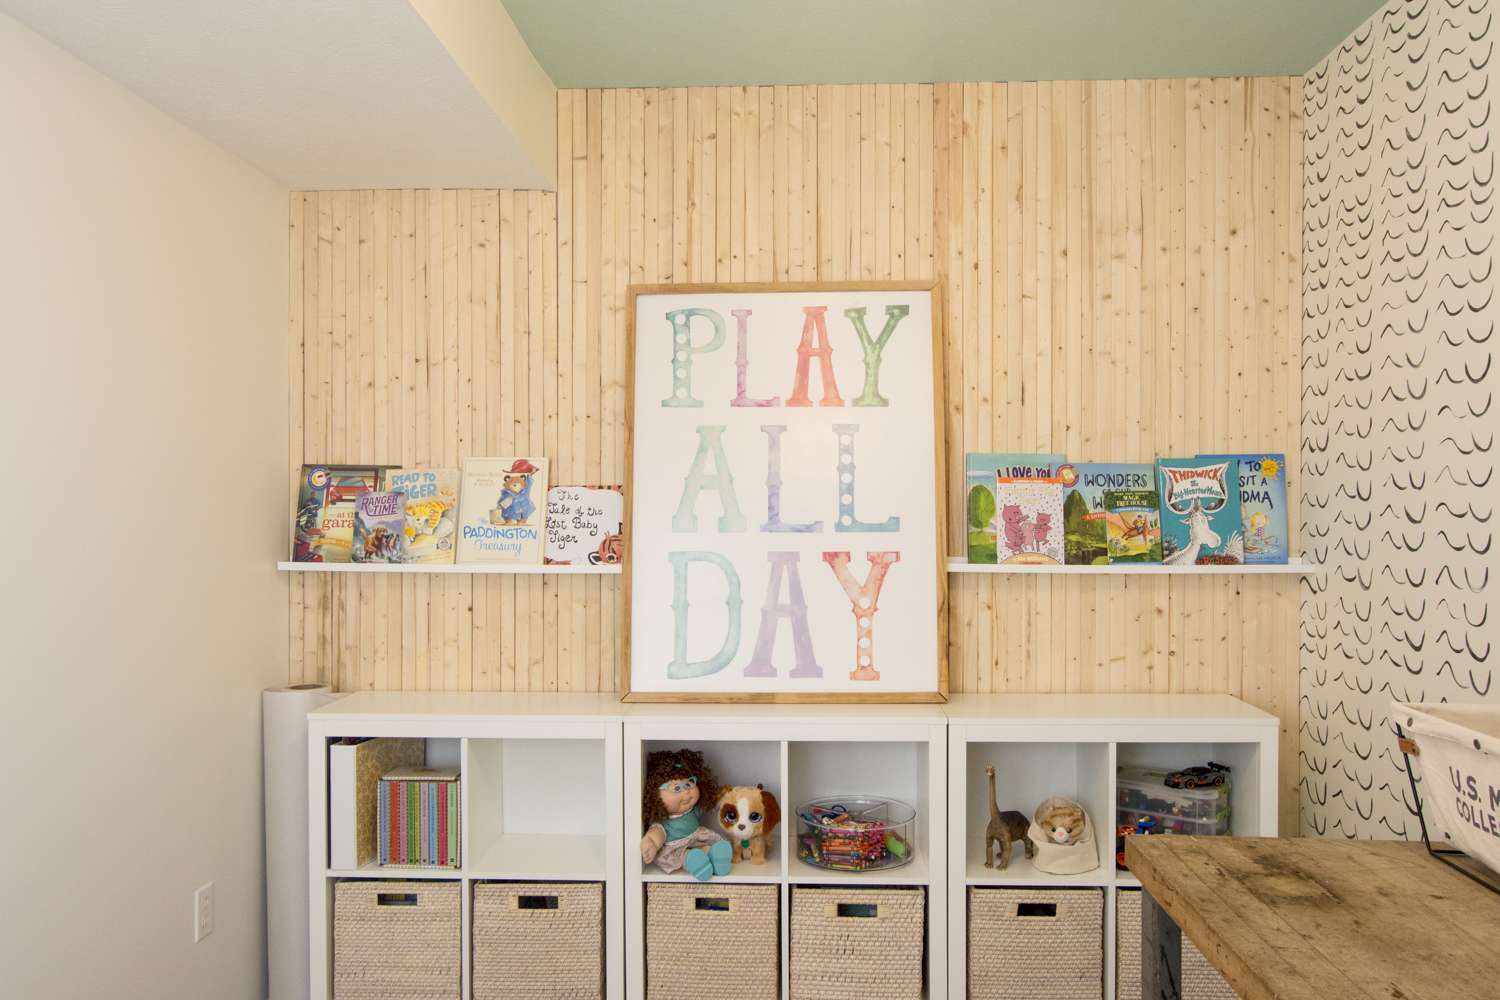 Picture ledge wall decor for kid's playroom